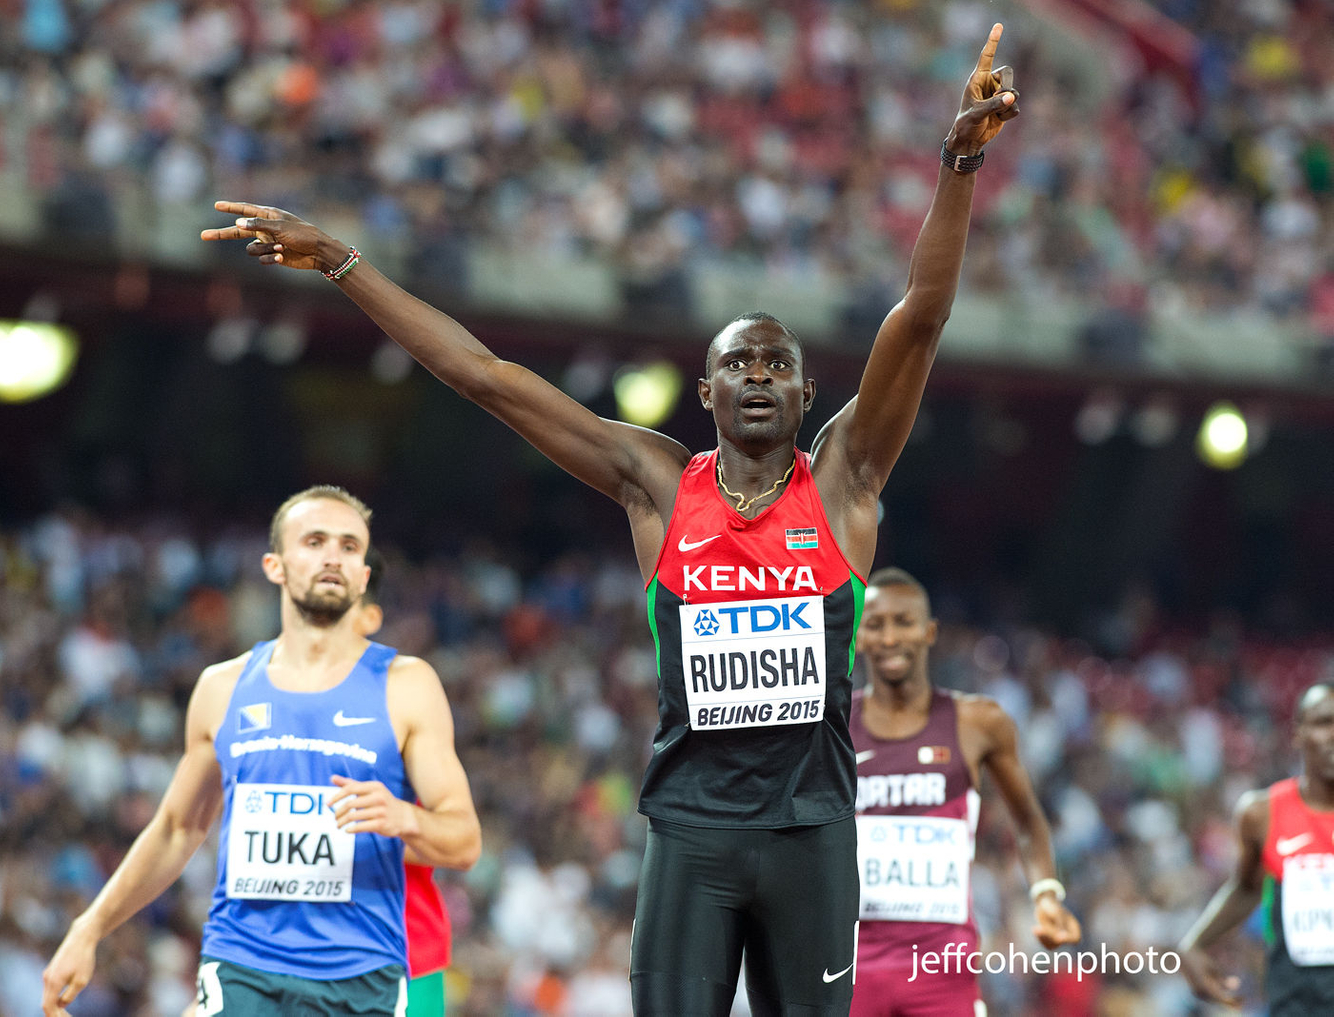 1beijing2015_night_4_rudisha_800_win_jeff_cohen_photo_16316_web.jpg